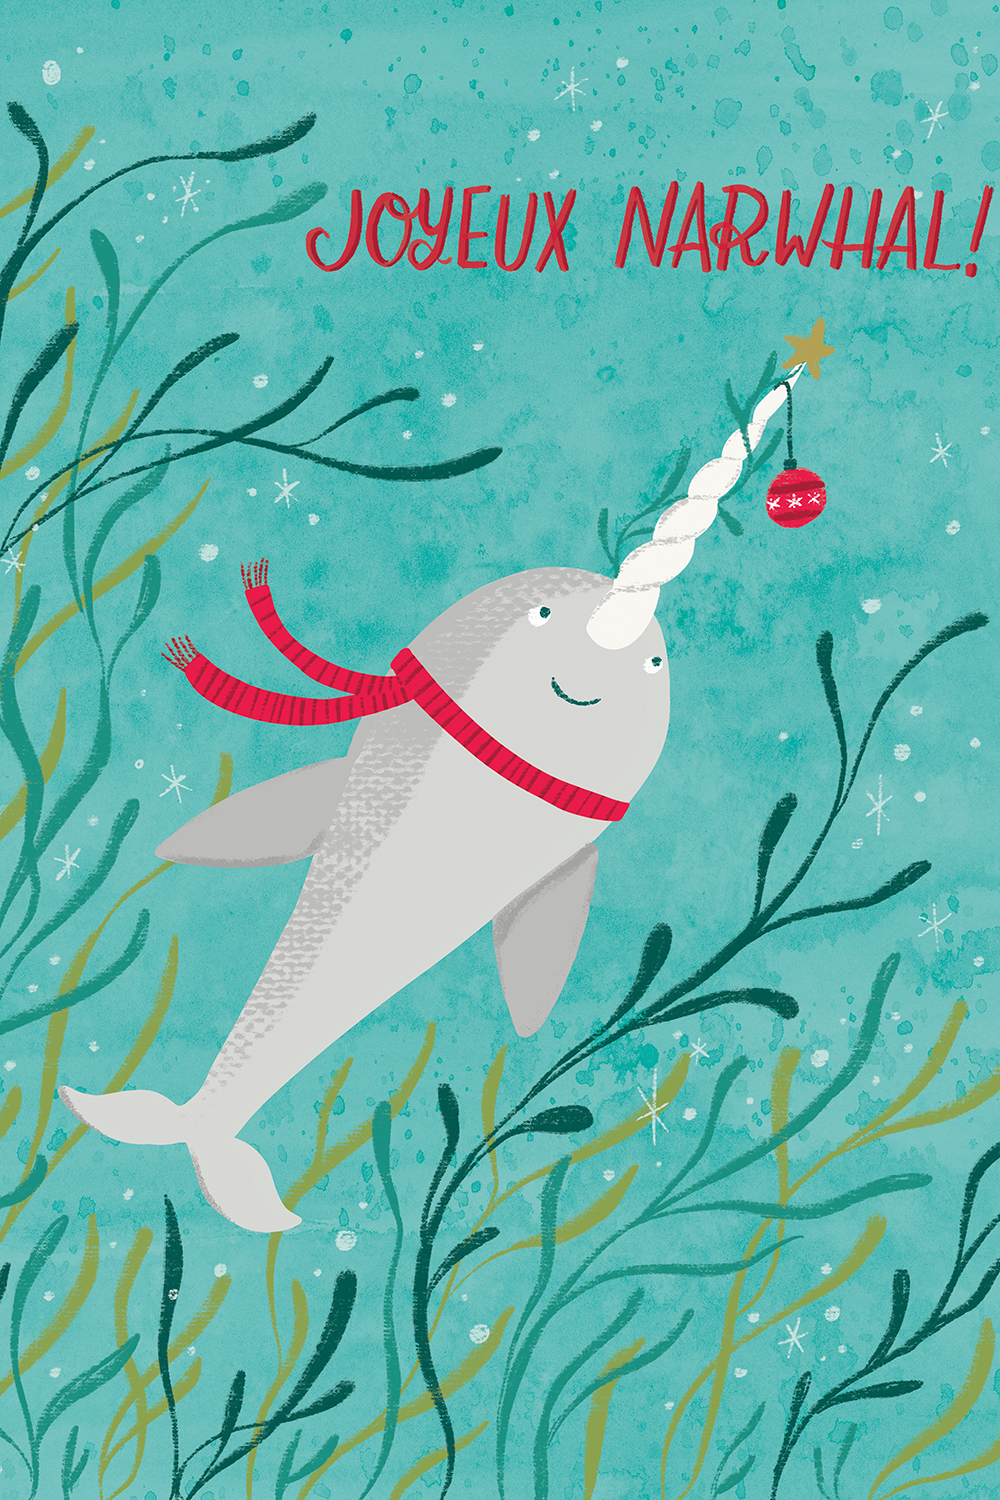 "A narwhal wearing a red scarf with a Christmas star and ornament on its horn under the sea with text that says ""Joyeux Narwhal!"""